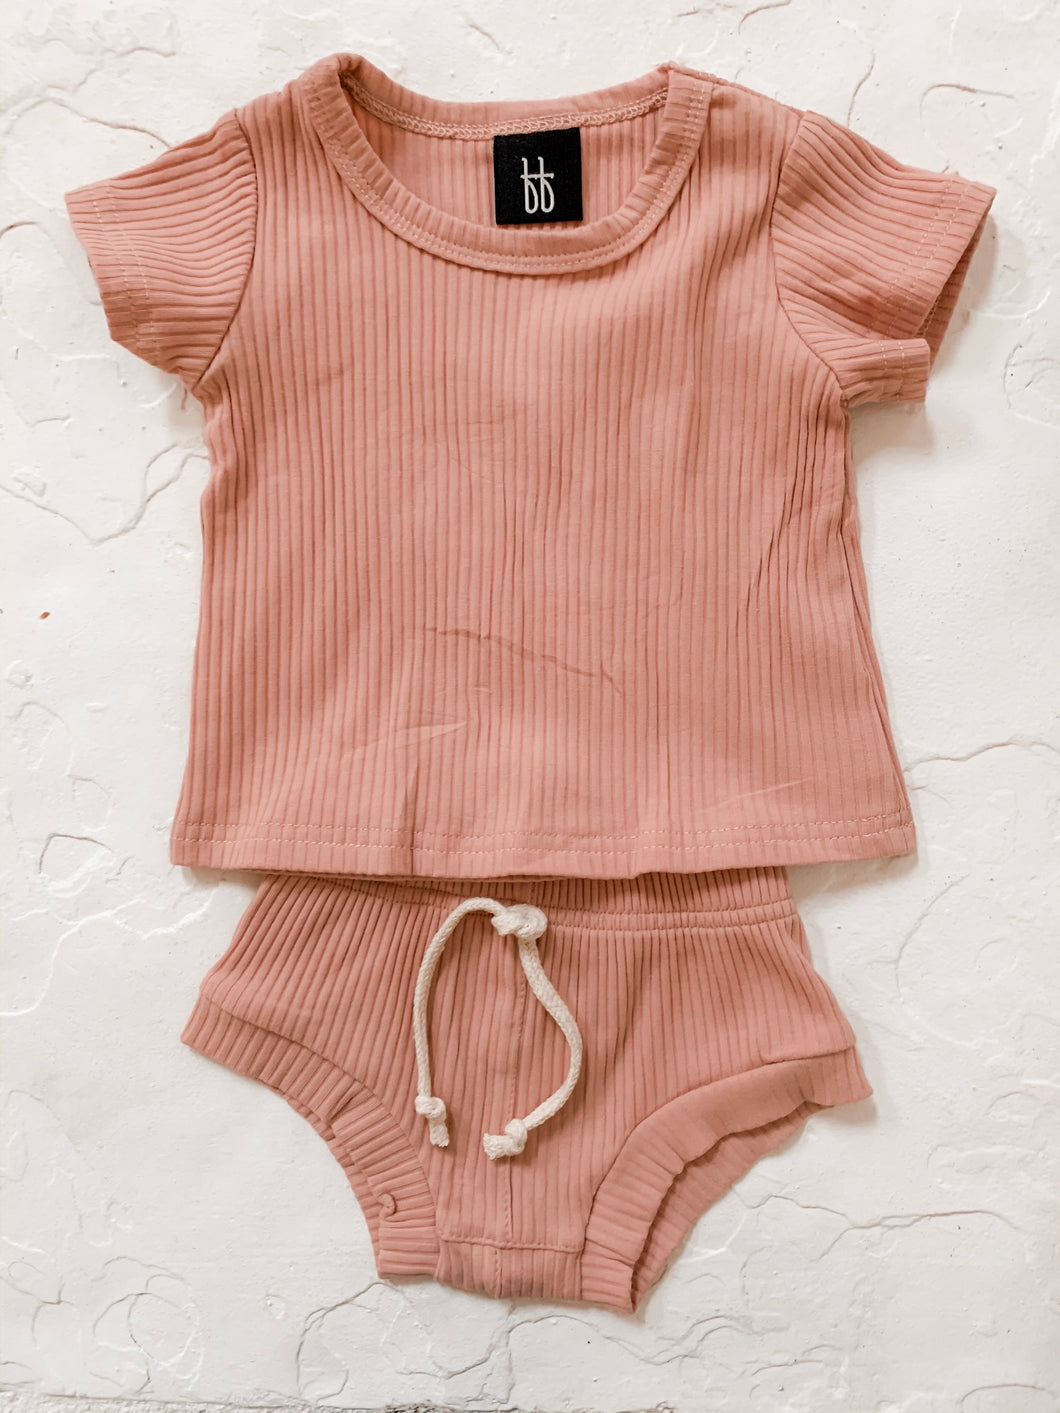 Ribbed Shortie Set - Prickly Pear Pink